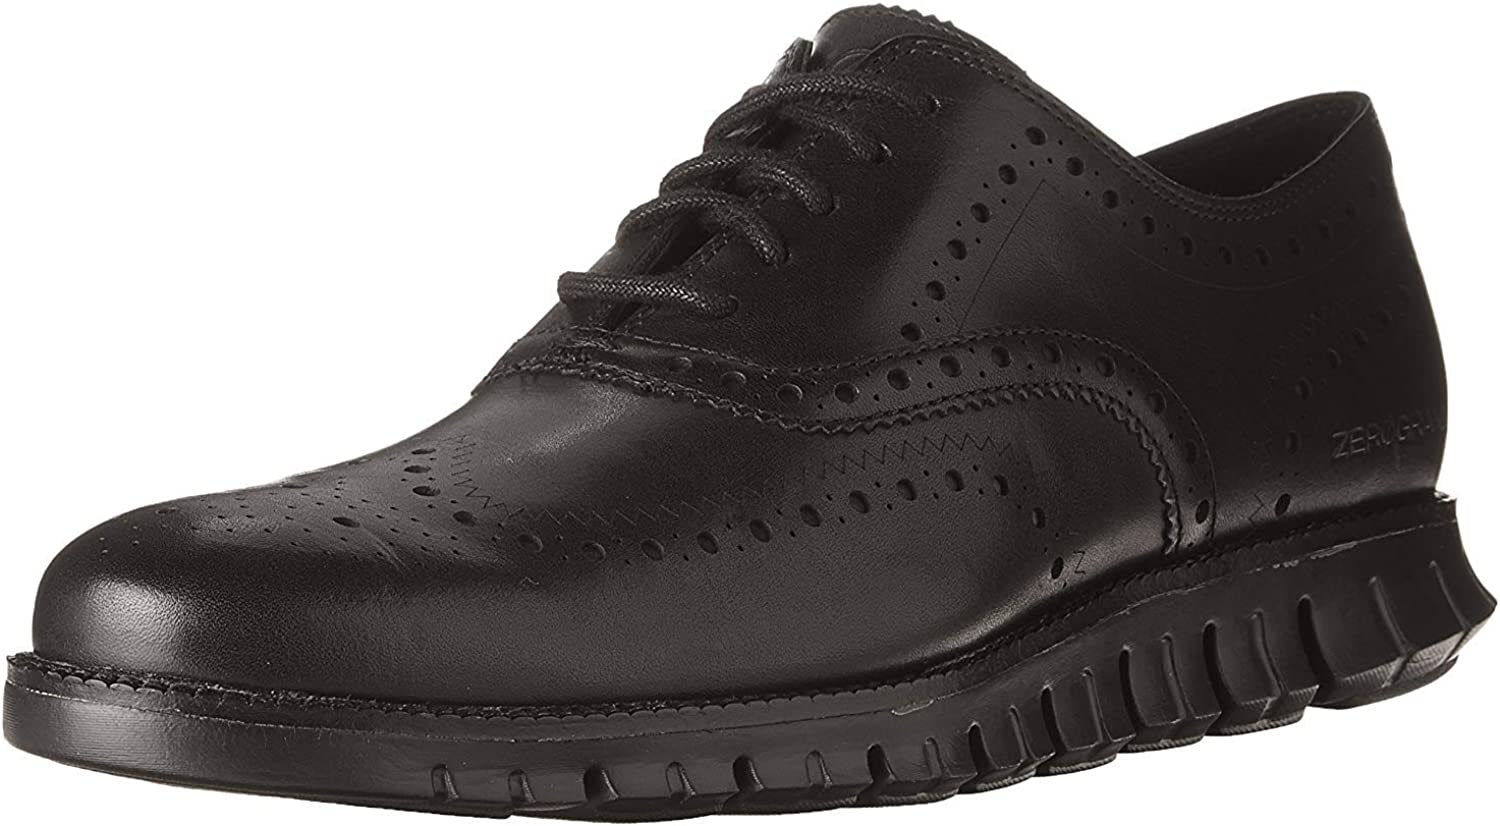 | Cole Haan Men's Zerogrand Wing Ox Leather Oxford | Oxfords